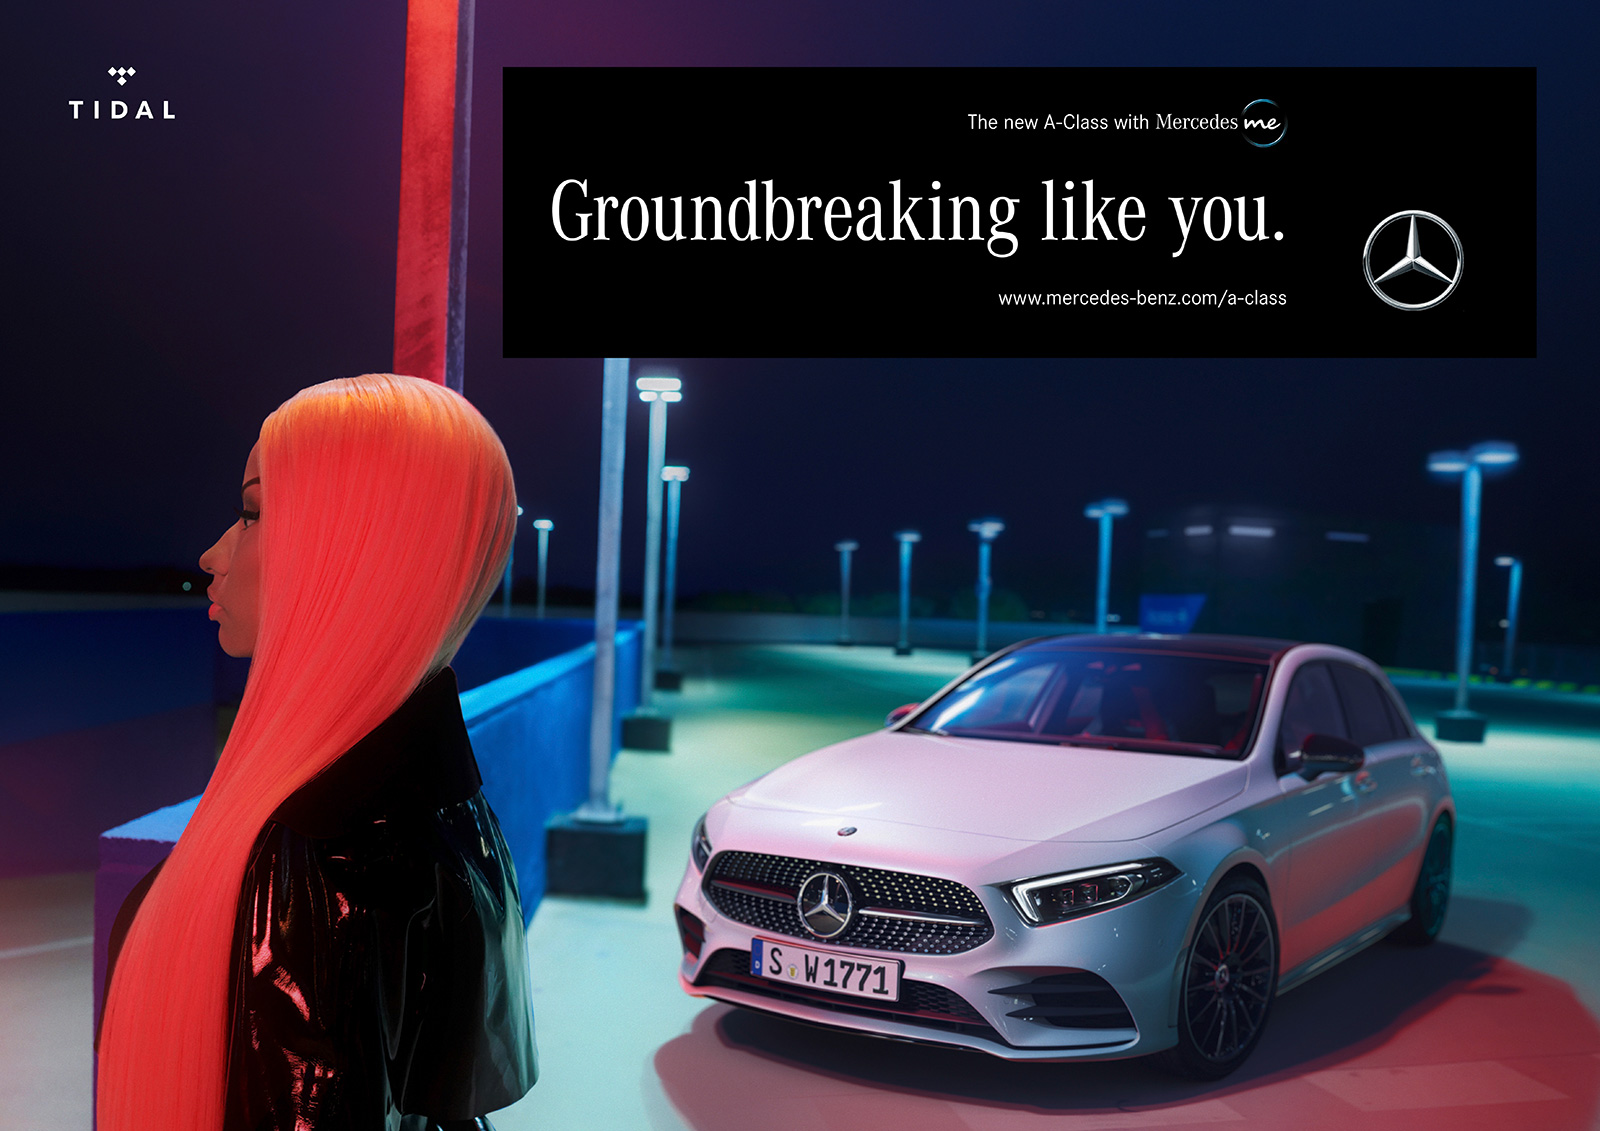 Nicki Minaj Stars In New Mercedes A Class Campaign